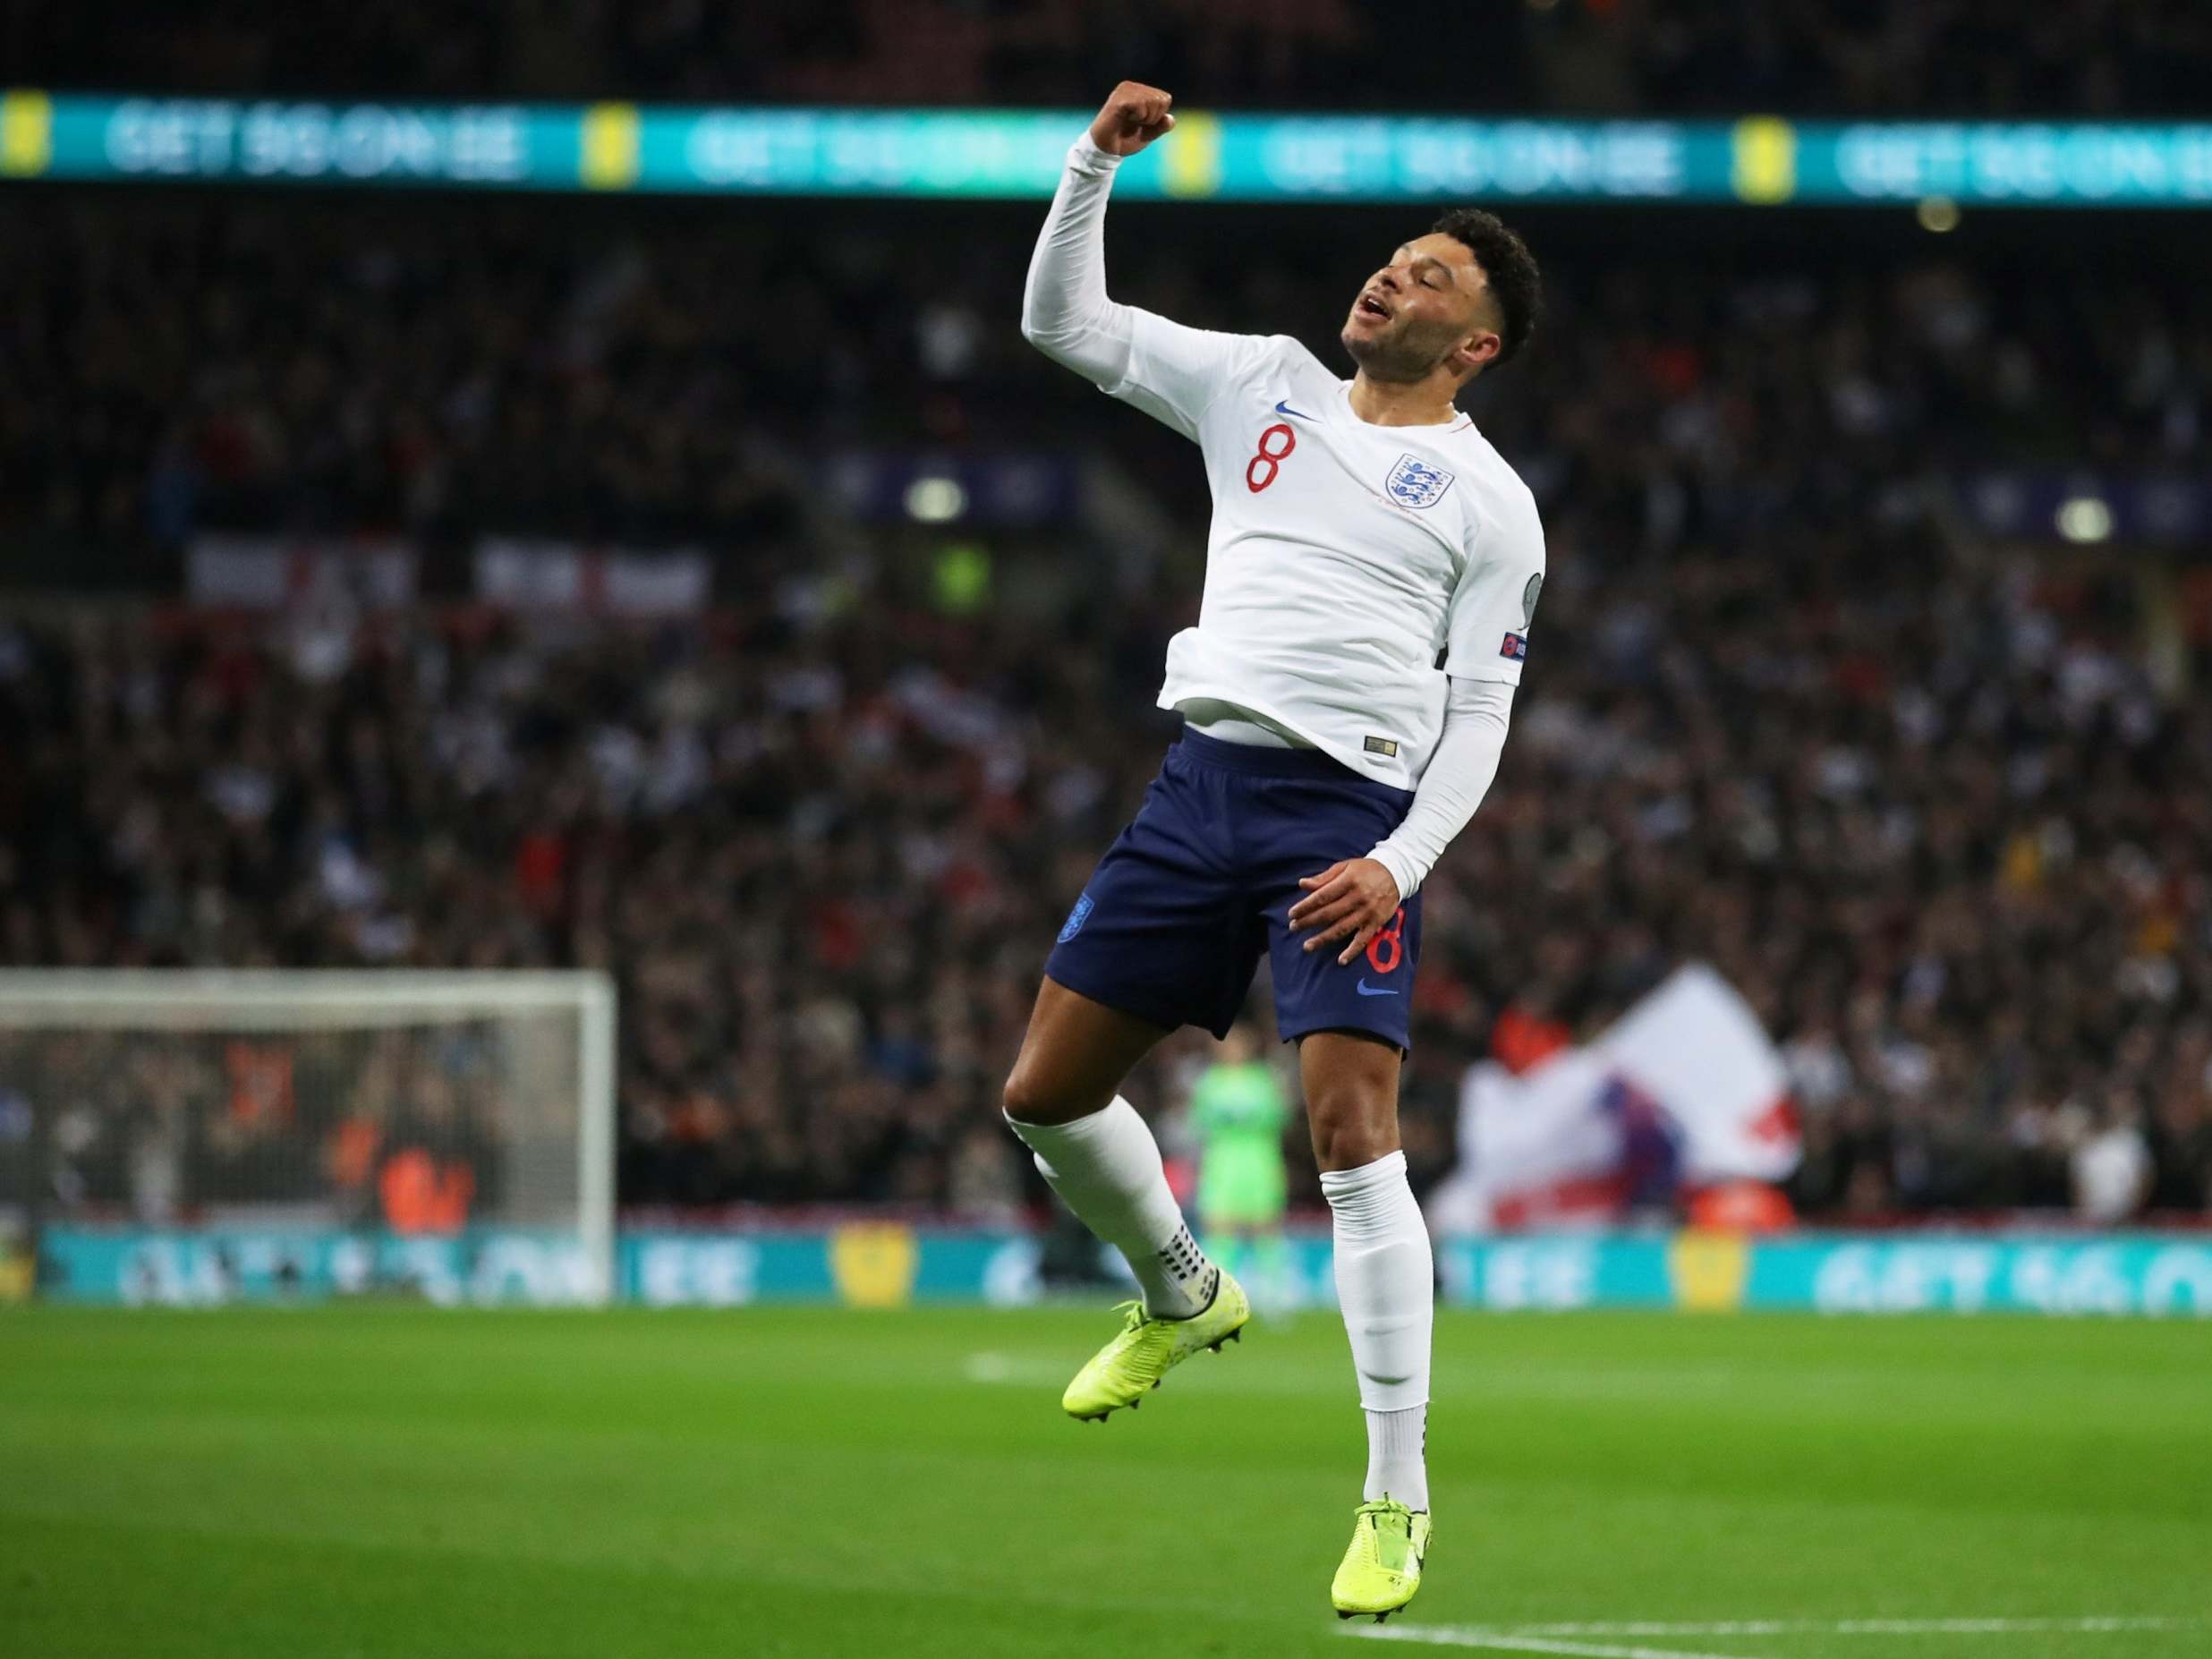 England vs Montenegro: How Alex Oxlade-Chamberlain offered solution to Gareth Southgate's conundrum